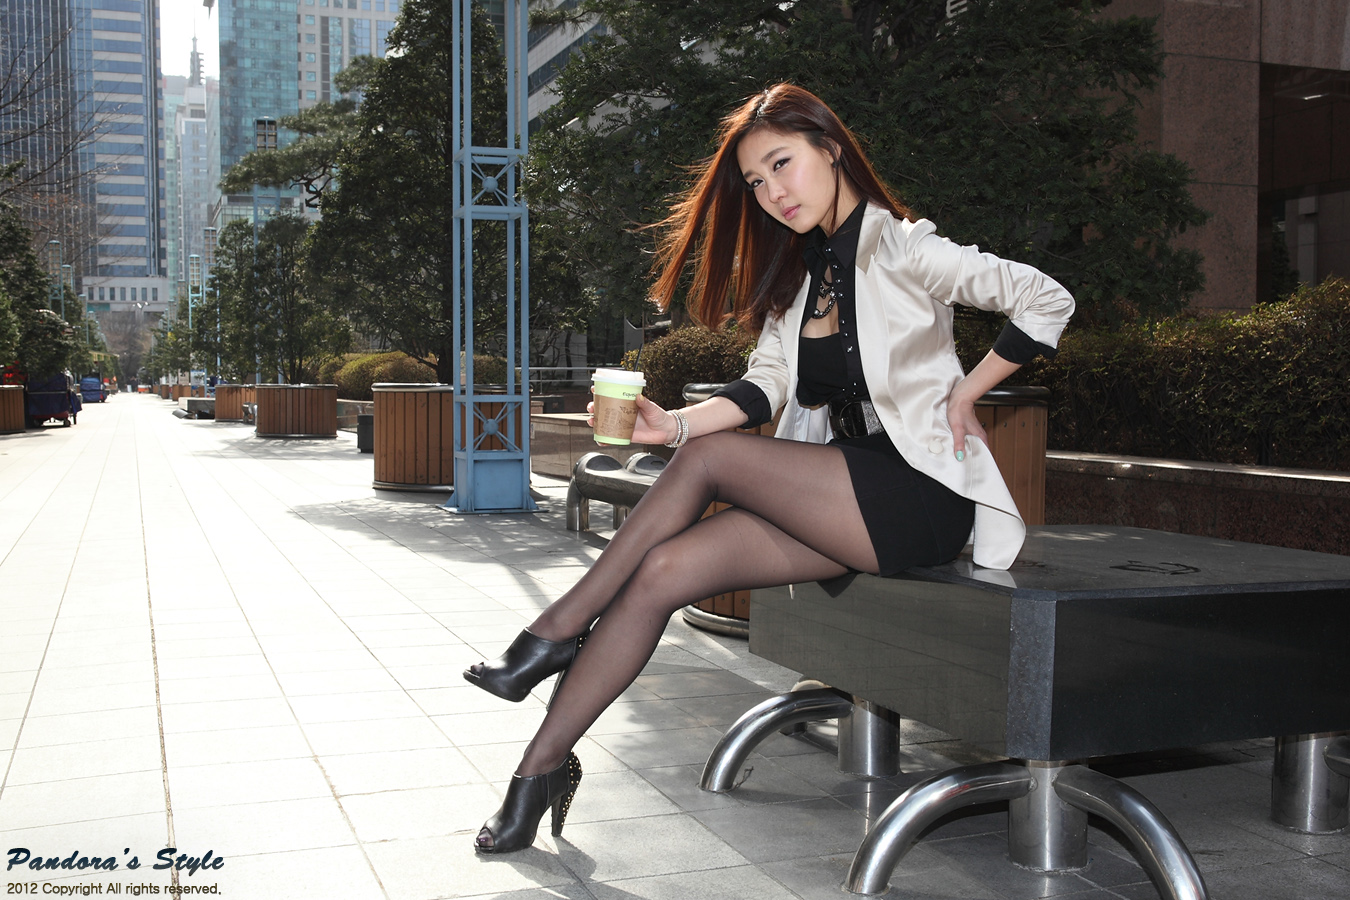 korean stockings Dressed finely in heels and stockings, in a nice looking city.